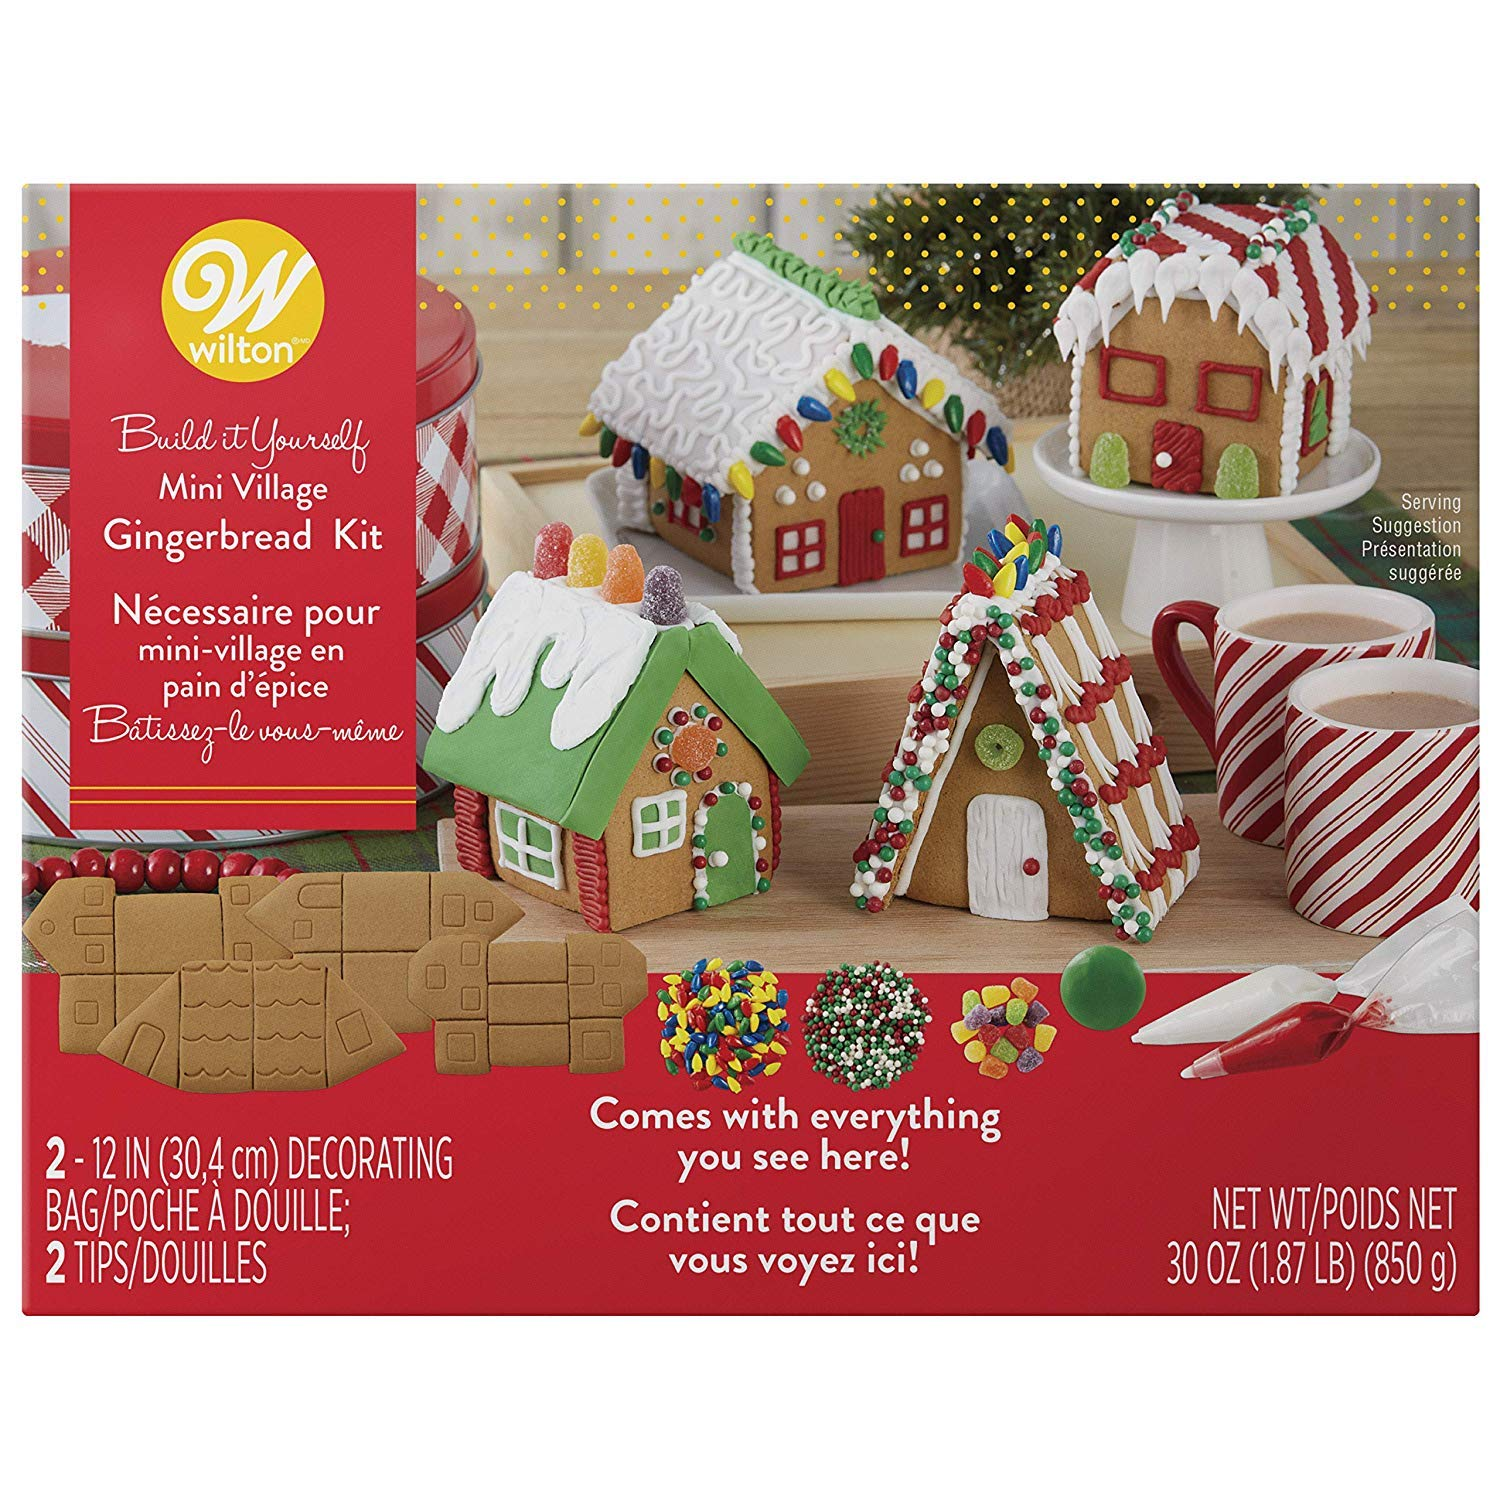 Gingerbread House Kit Build It Yourself Mini Village , Christmas Fun  decorating, Kit Includes 4 Sets Of House Panels, 4 Types Of Candies,  Icing,